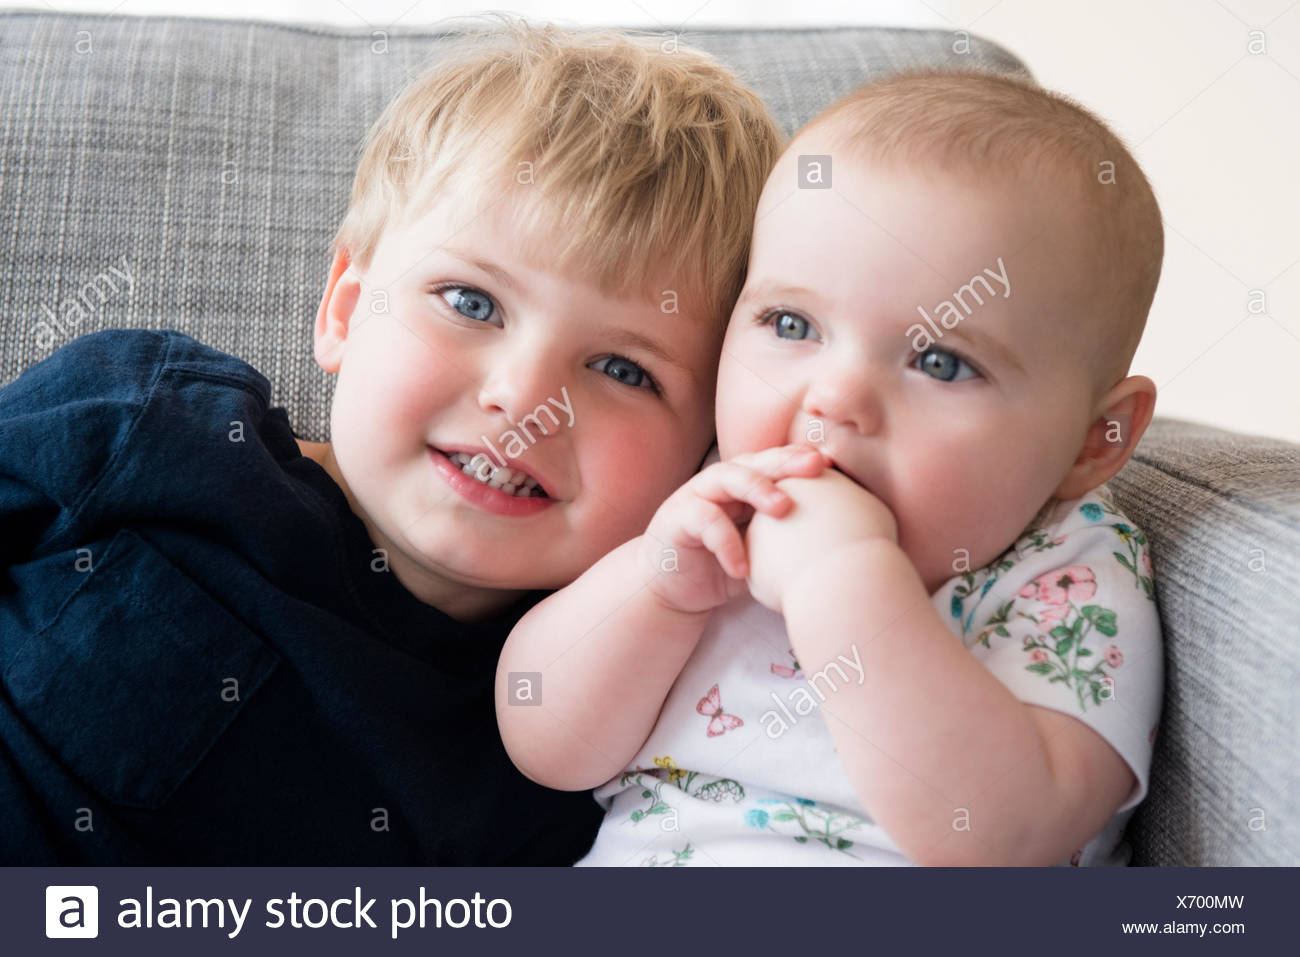 Boy (2-3) with baby sister (12-17 months) sitting on sofa - Stock Image